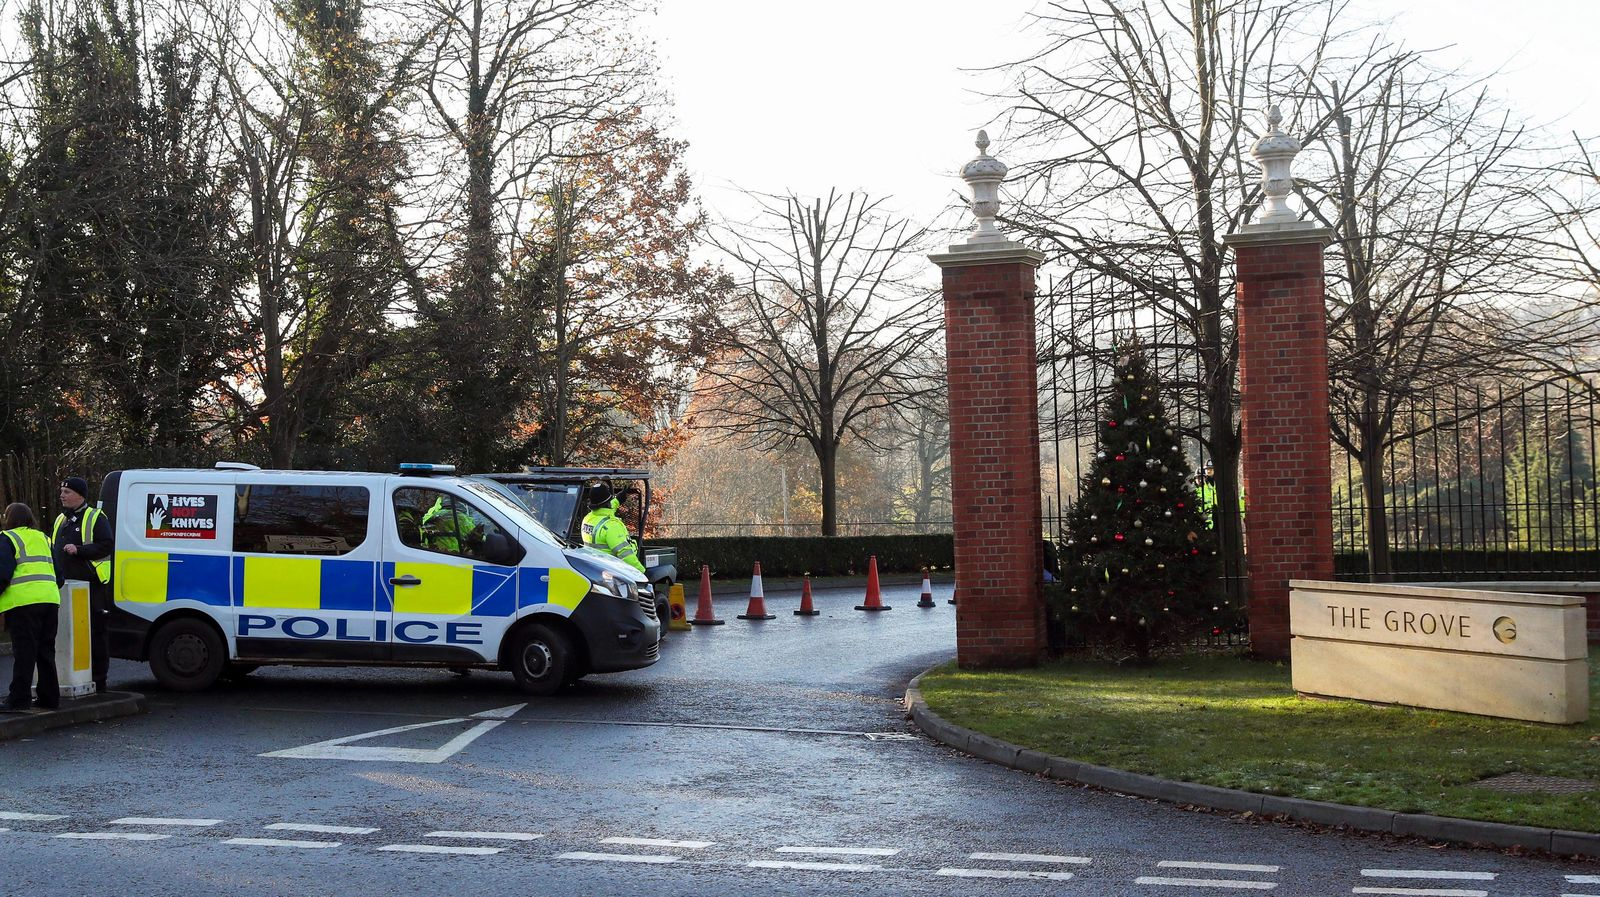 Police outside The Grove hotel in Watford ahead of the NATO Leaders Meeting beginning on Tuesday, in Hertfordshire, England, Monday, Dec. 2, 2019. (Steve Parsons/PA via AP)